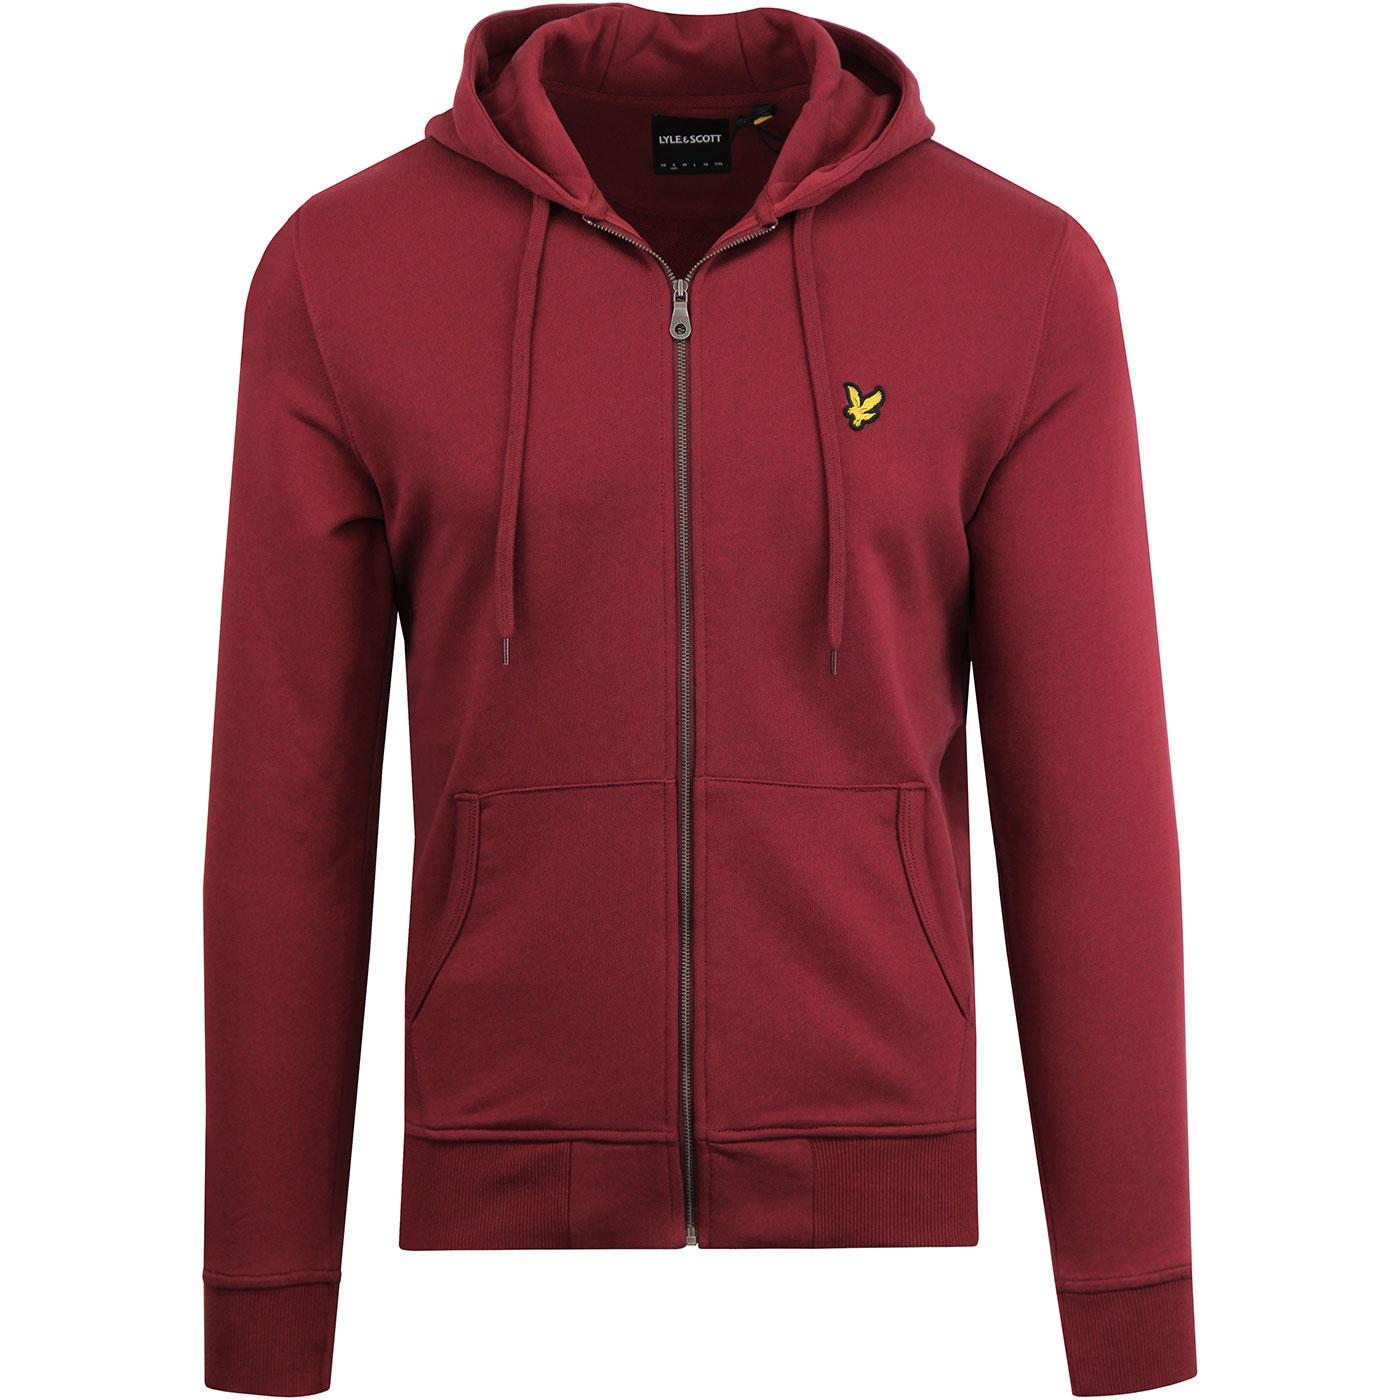 LYLE & SCOTT Men's 70's Retro Zip Through Hoodie